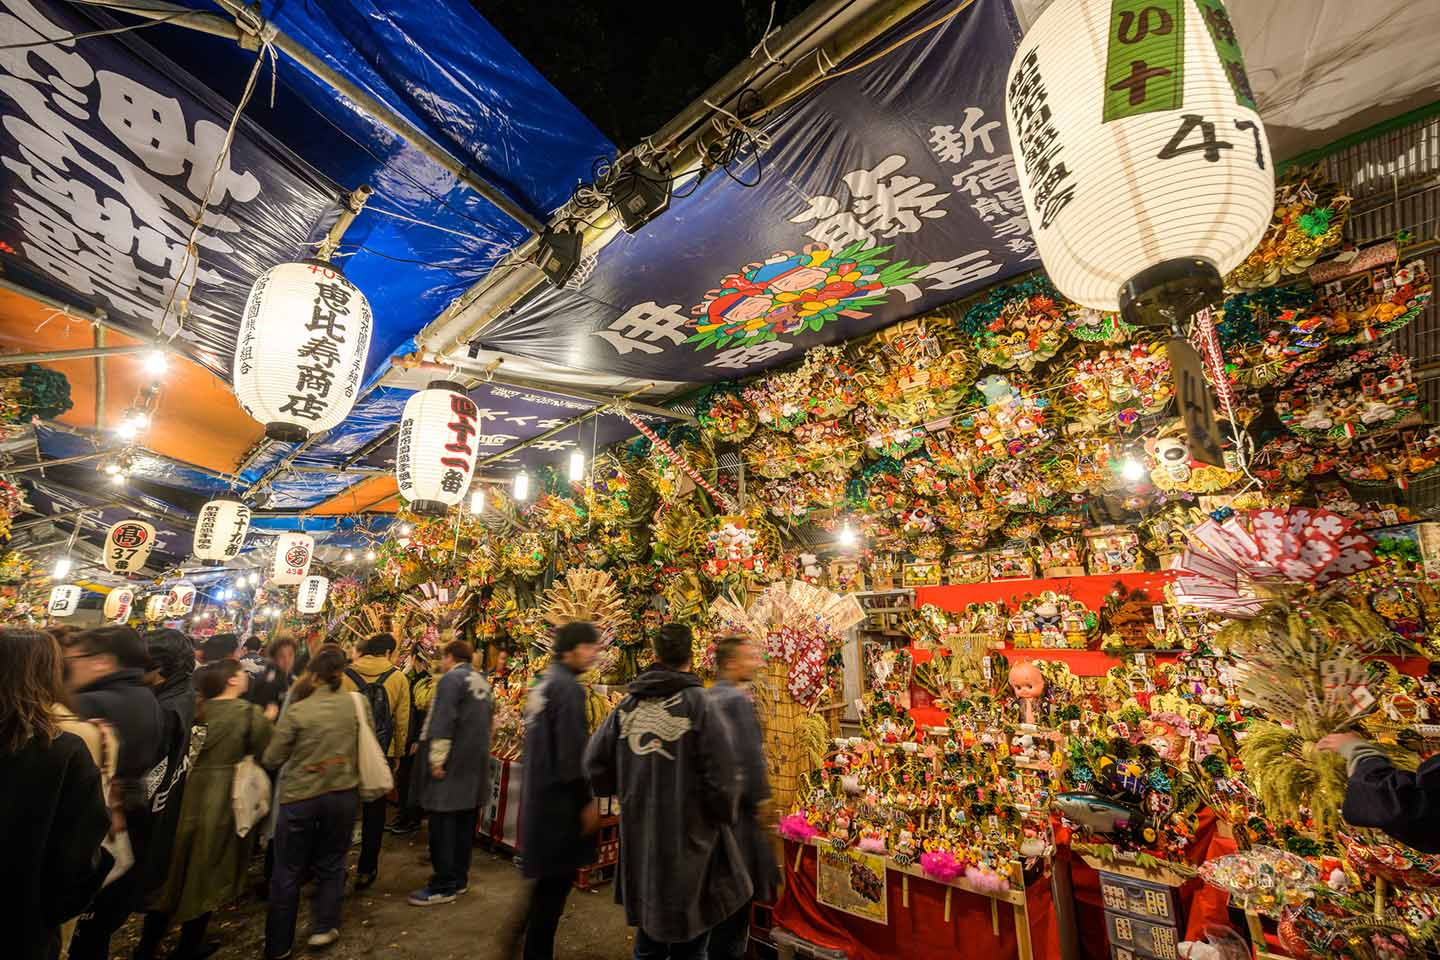 3 Greatest Tori no Ichi Festival in Kanto Regions